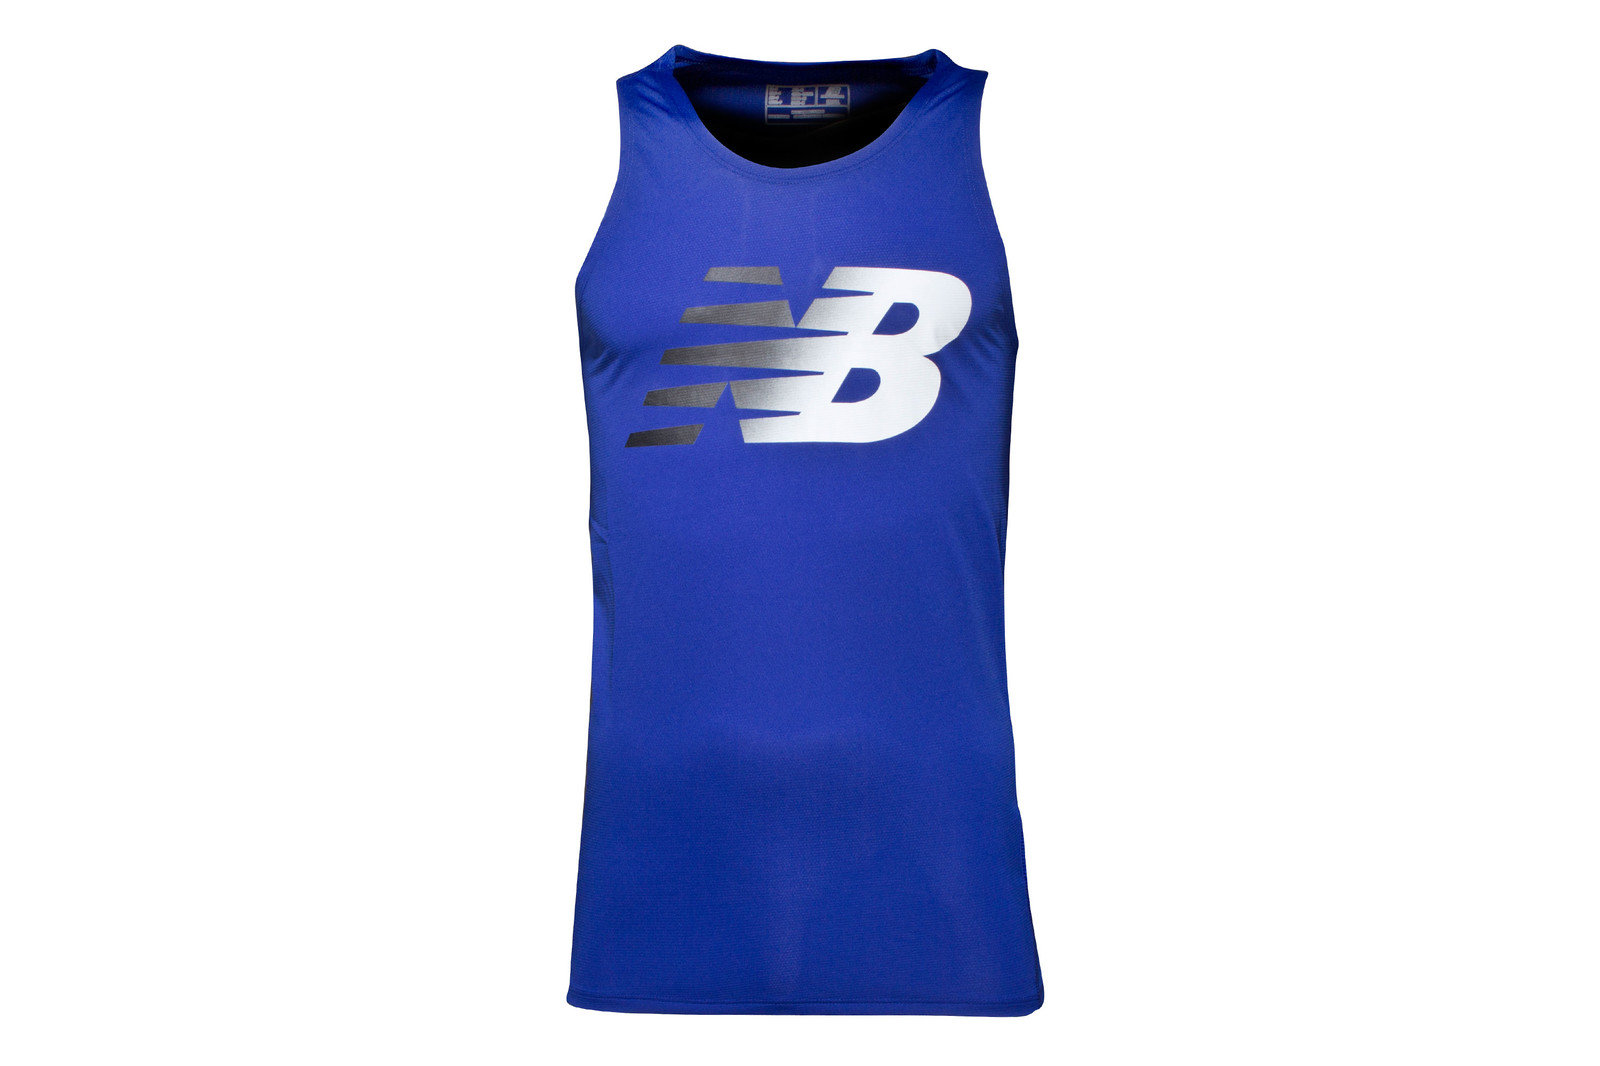 Image of Accelerate Performance Training Singlet